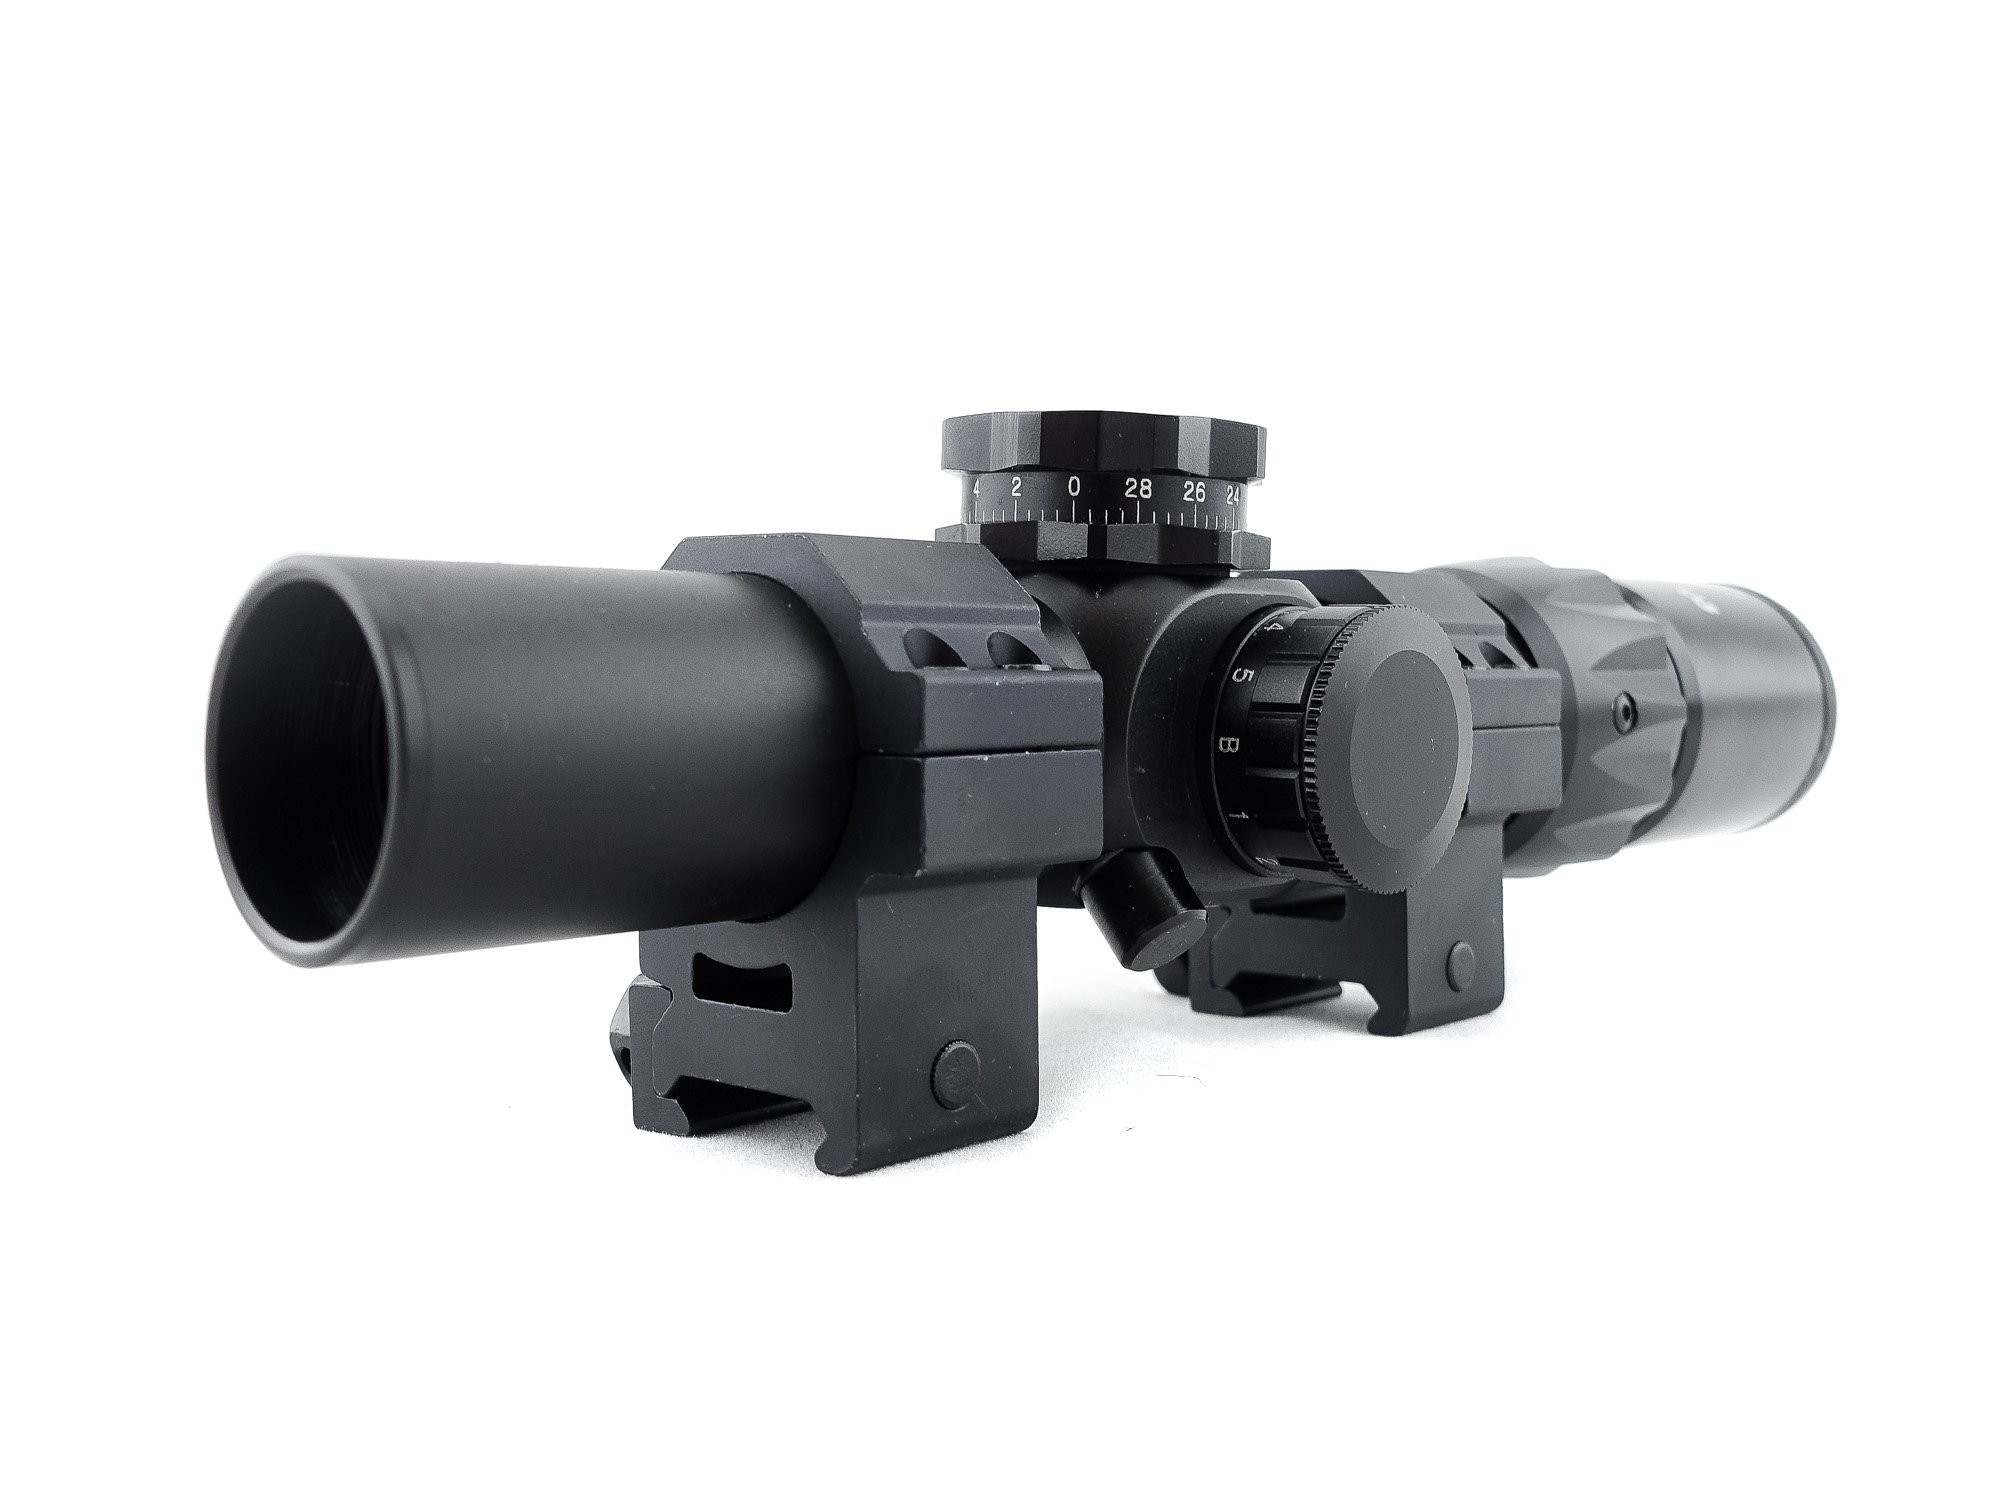 Monstrum Tactical 1-6x24 First Focal Plane (FFP) Rifle Scope with Illuminated BDC Reticle (Black)